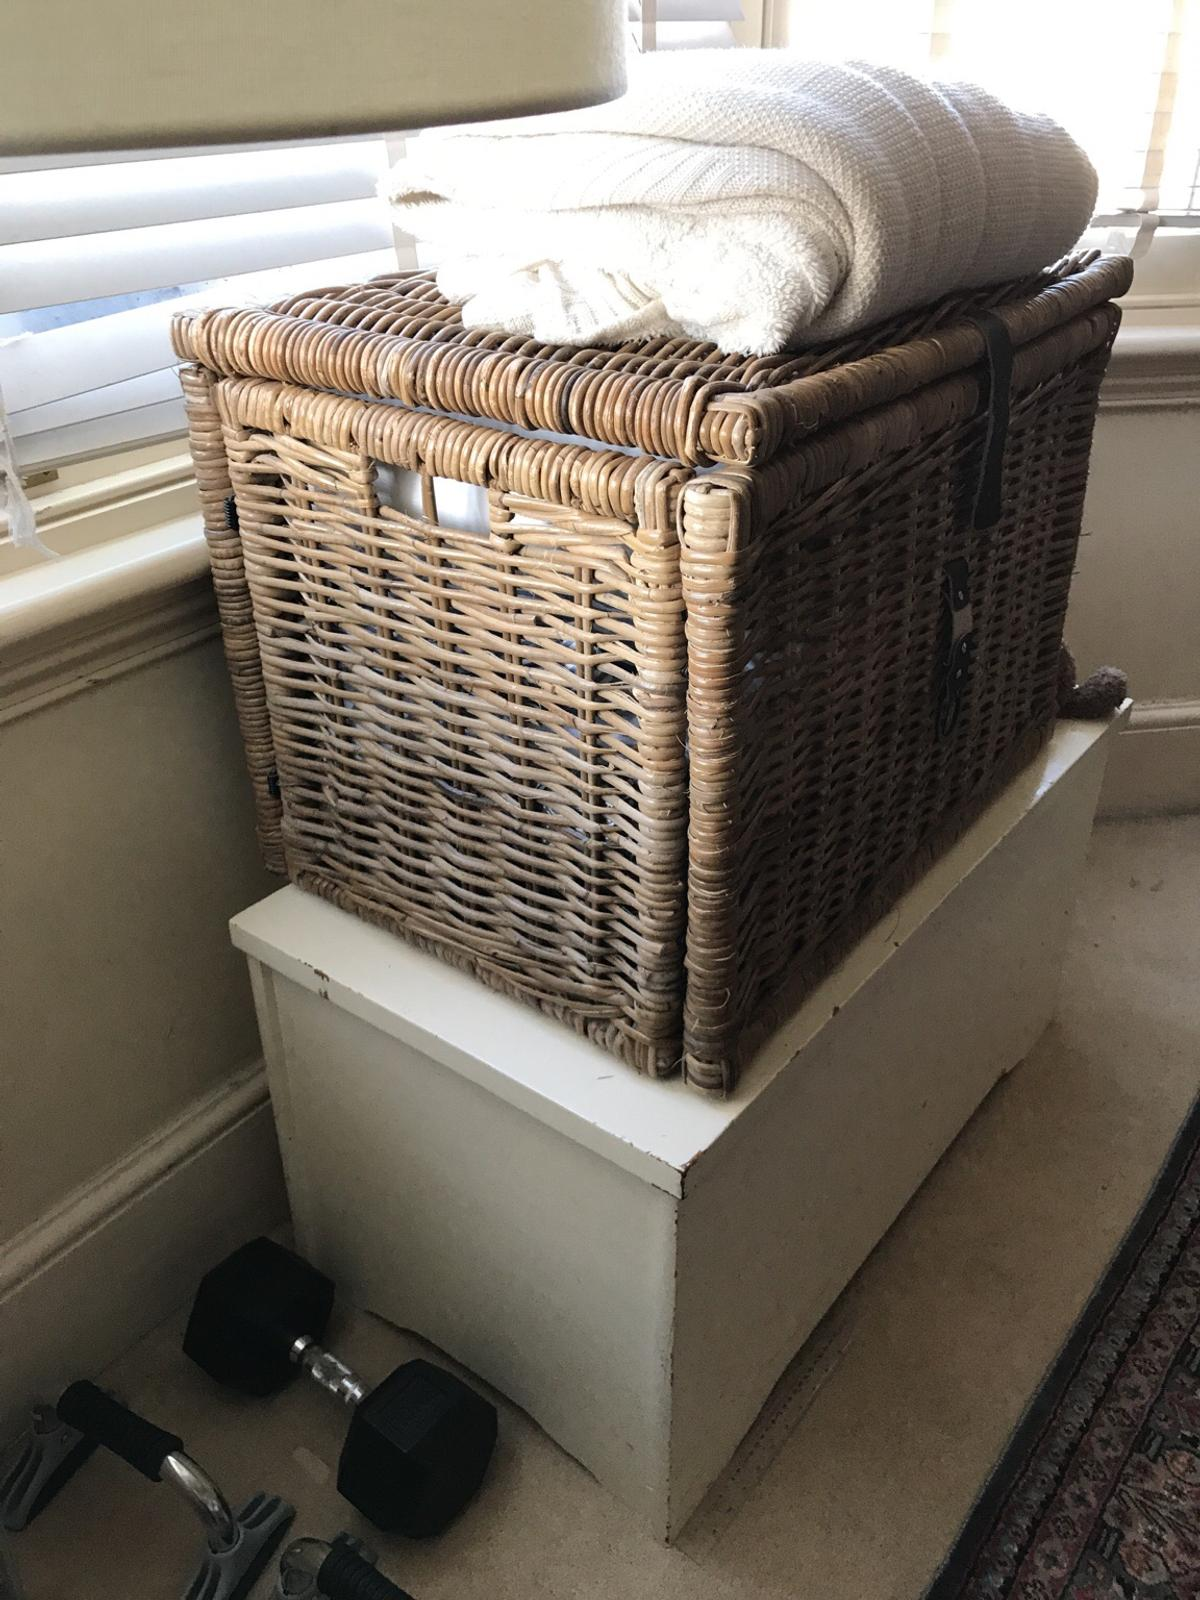 Large Wicker Ikea Storage Chest In Sw11 London For 20 00 For Sale Shpock